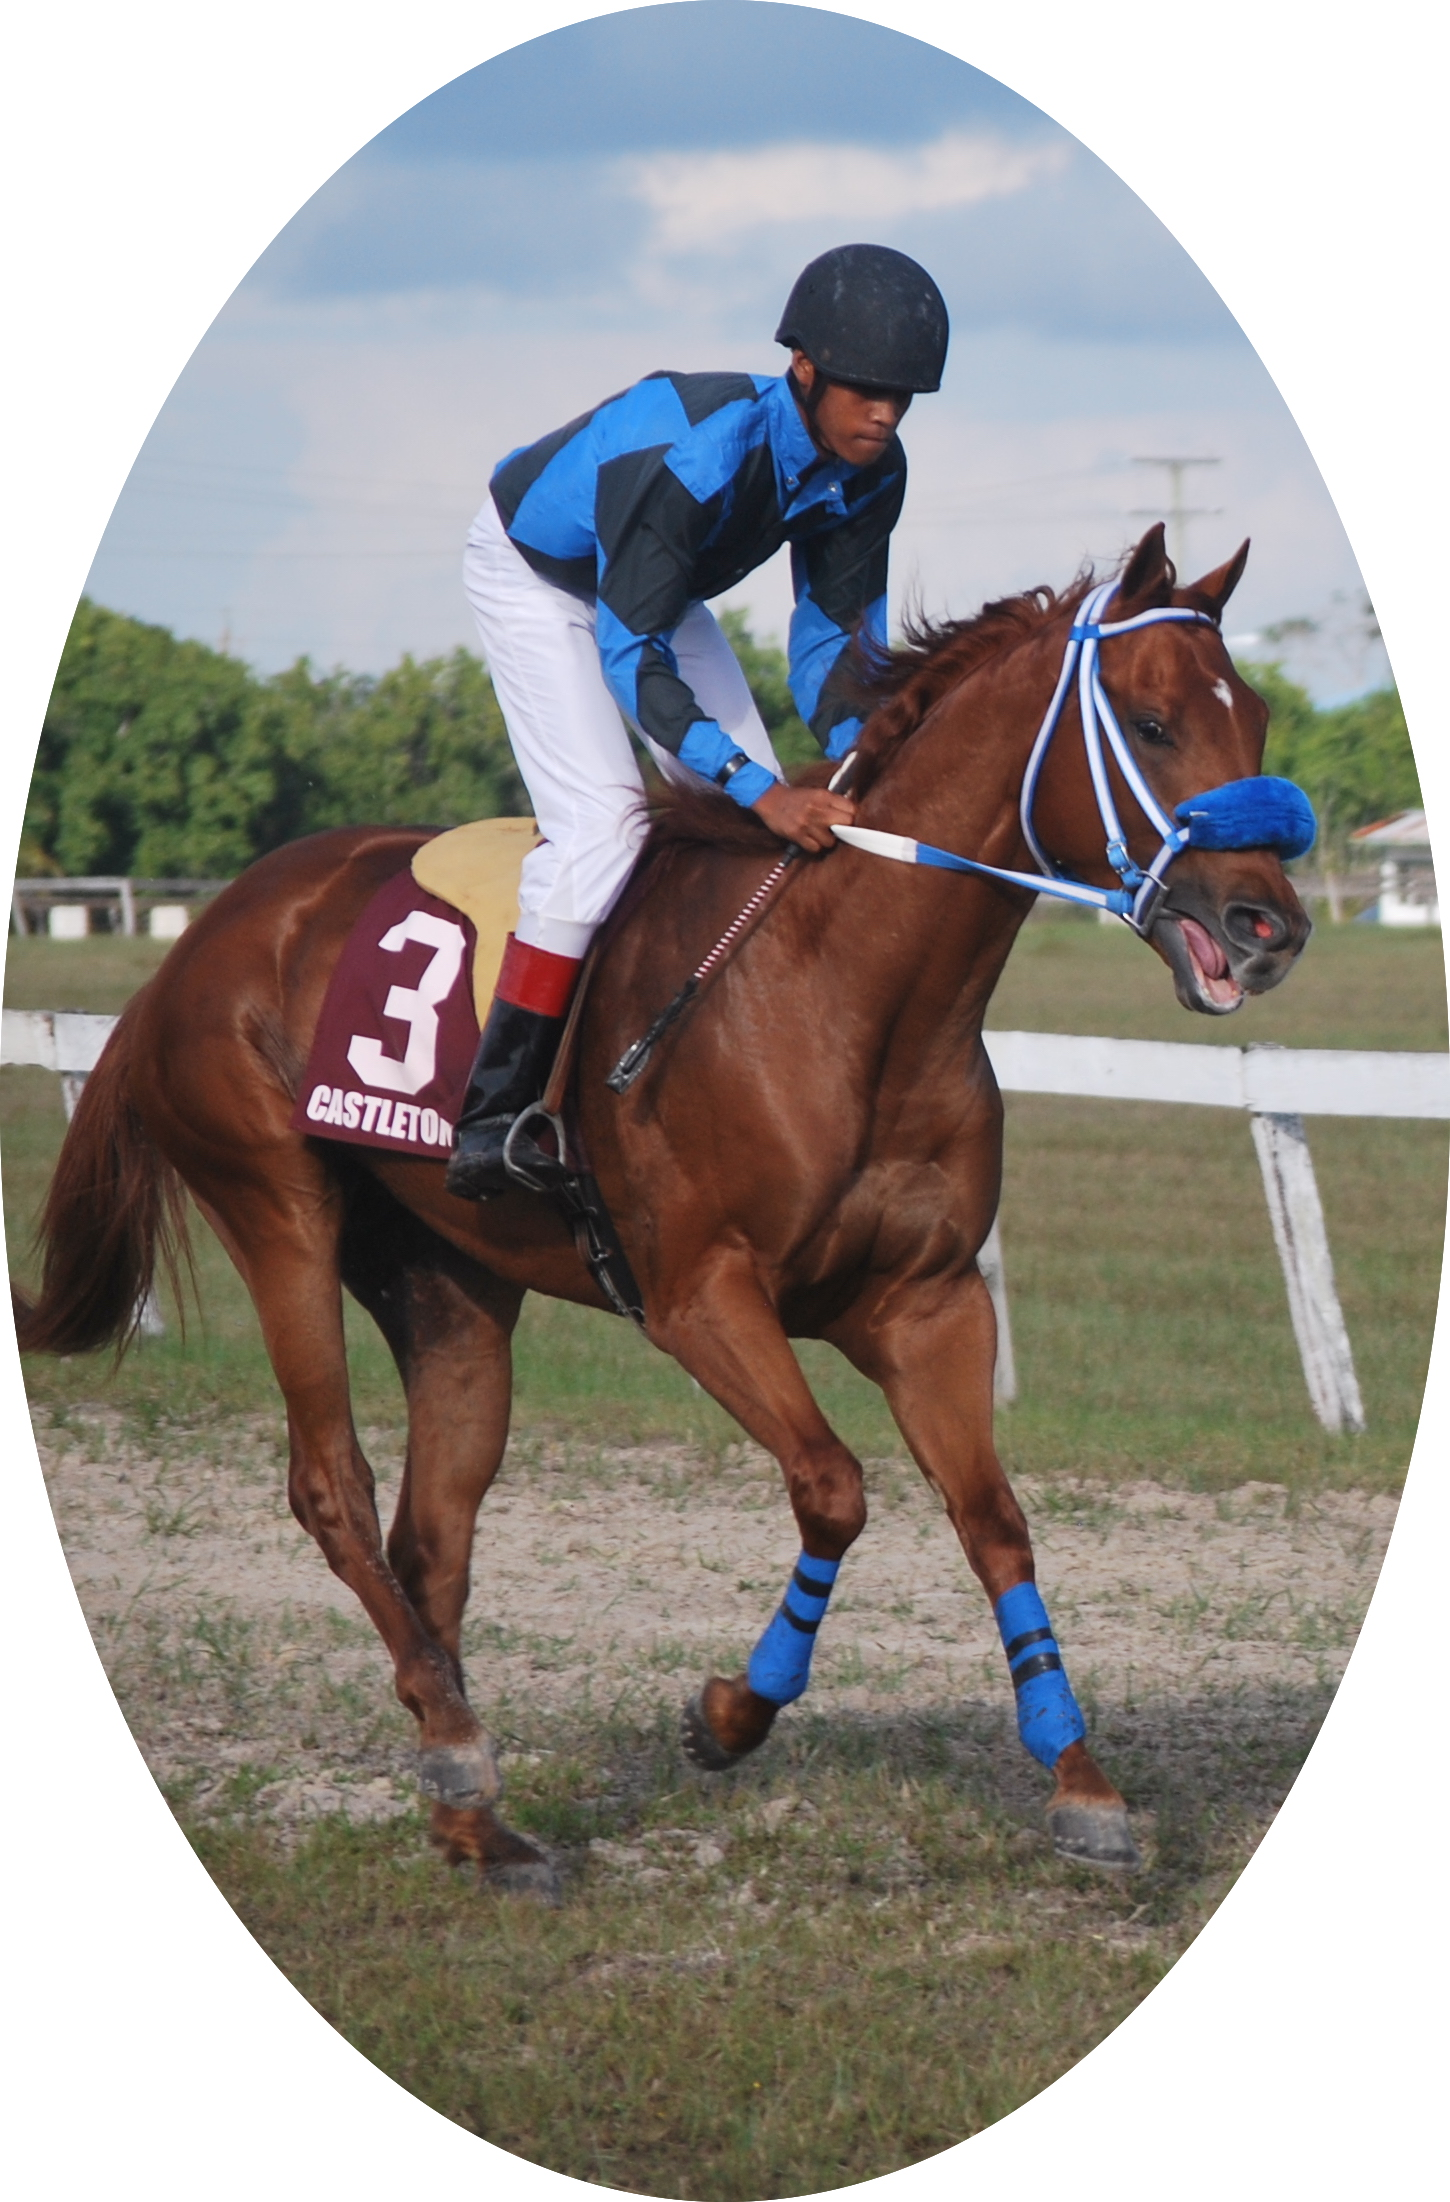 https://horseracingbelize.com/Junior